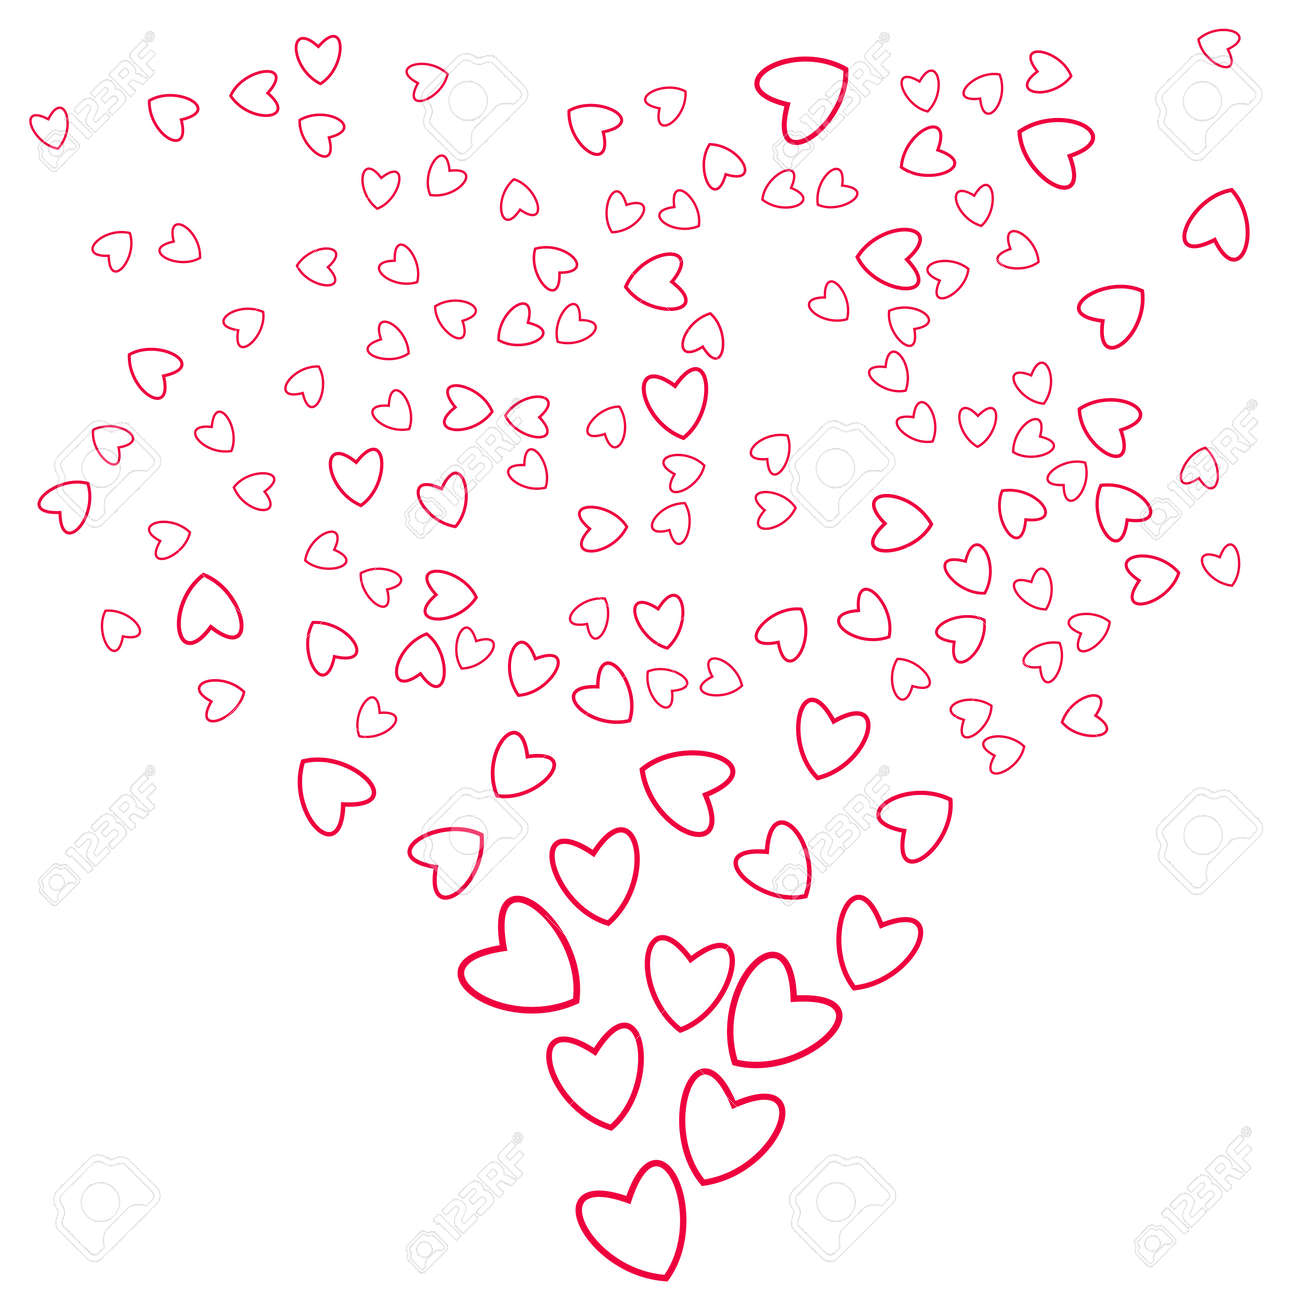 Abstract Love Background Of Little Hearts For Invitation Cards